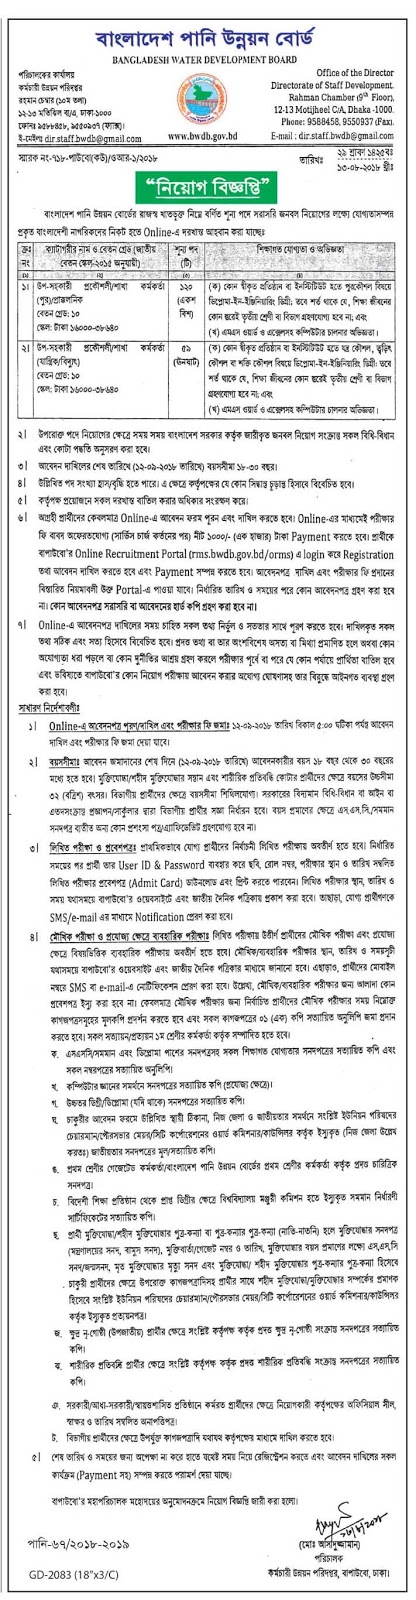 Bangladesh Water Development Board (BWDB) Job Circular 2018